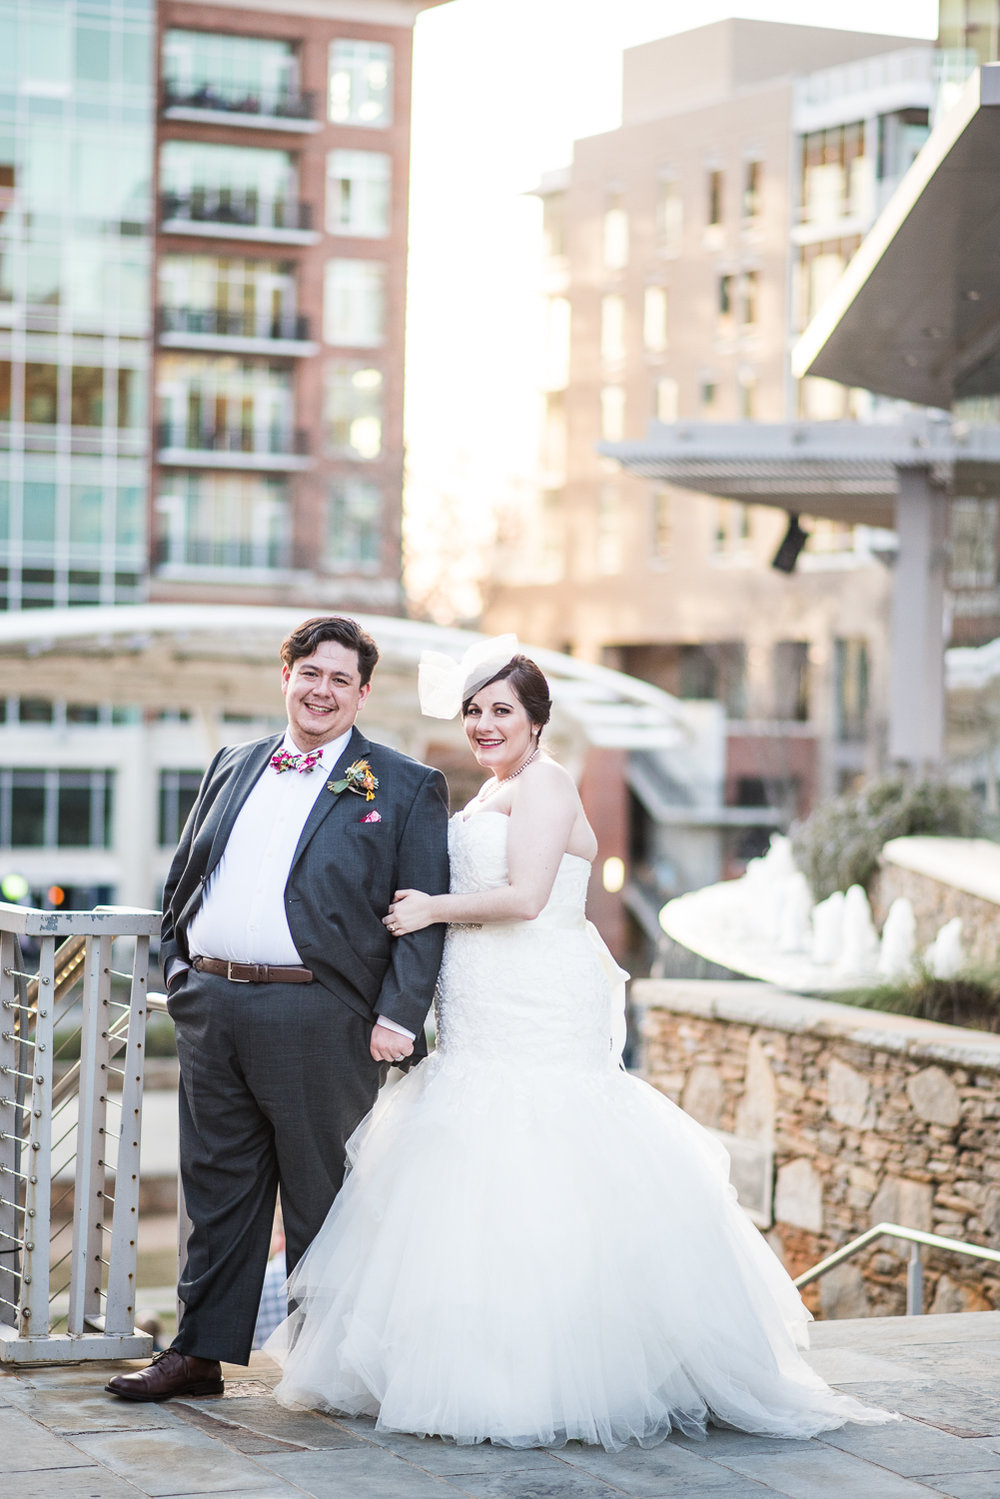 Katy Beth + Phil: Book Themed Wedding in Downtown Greenville | Palmetto State Weddings